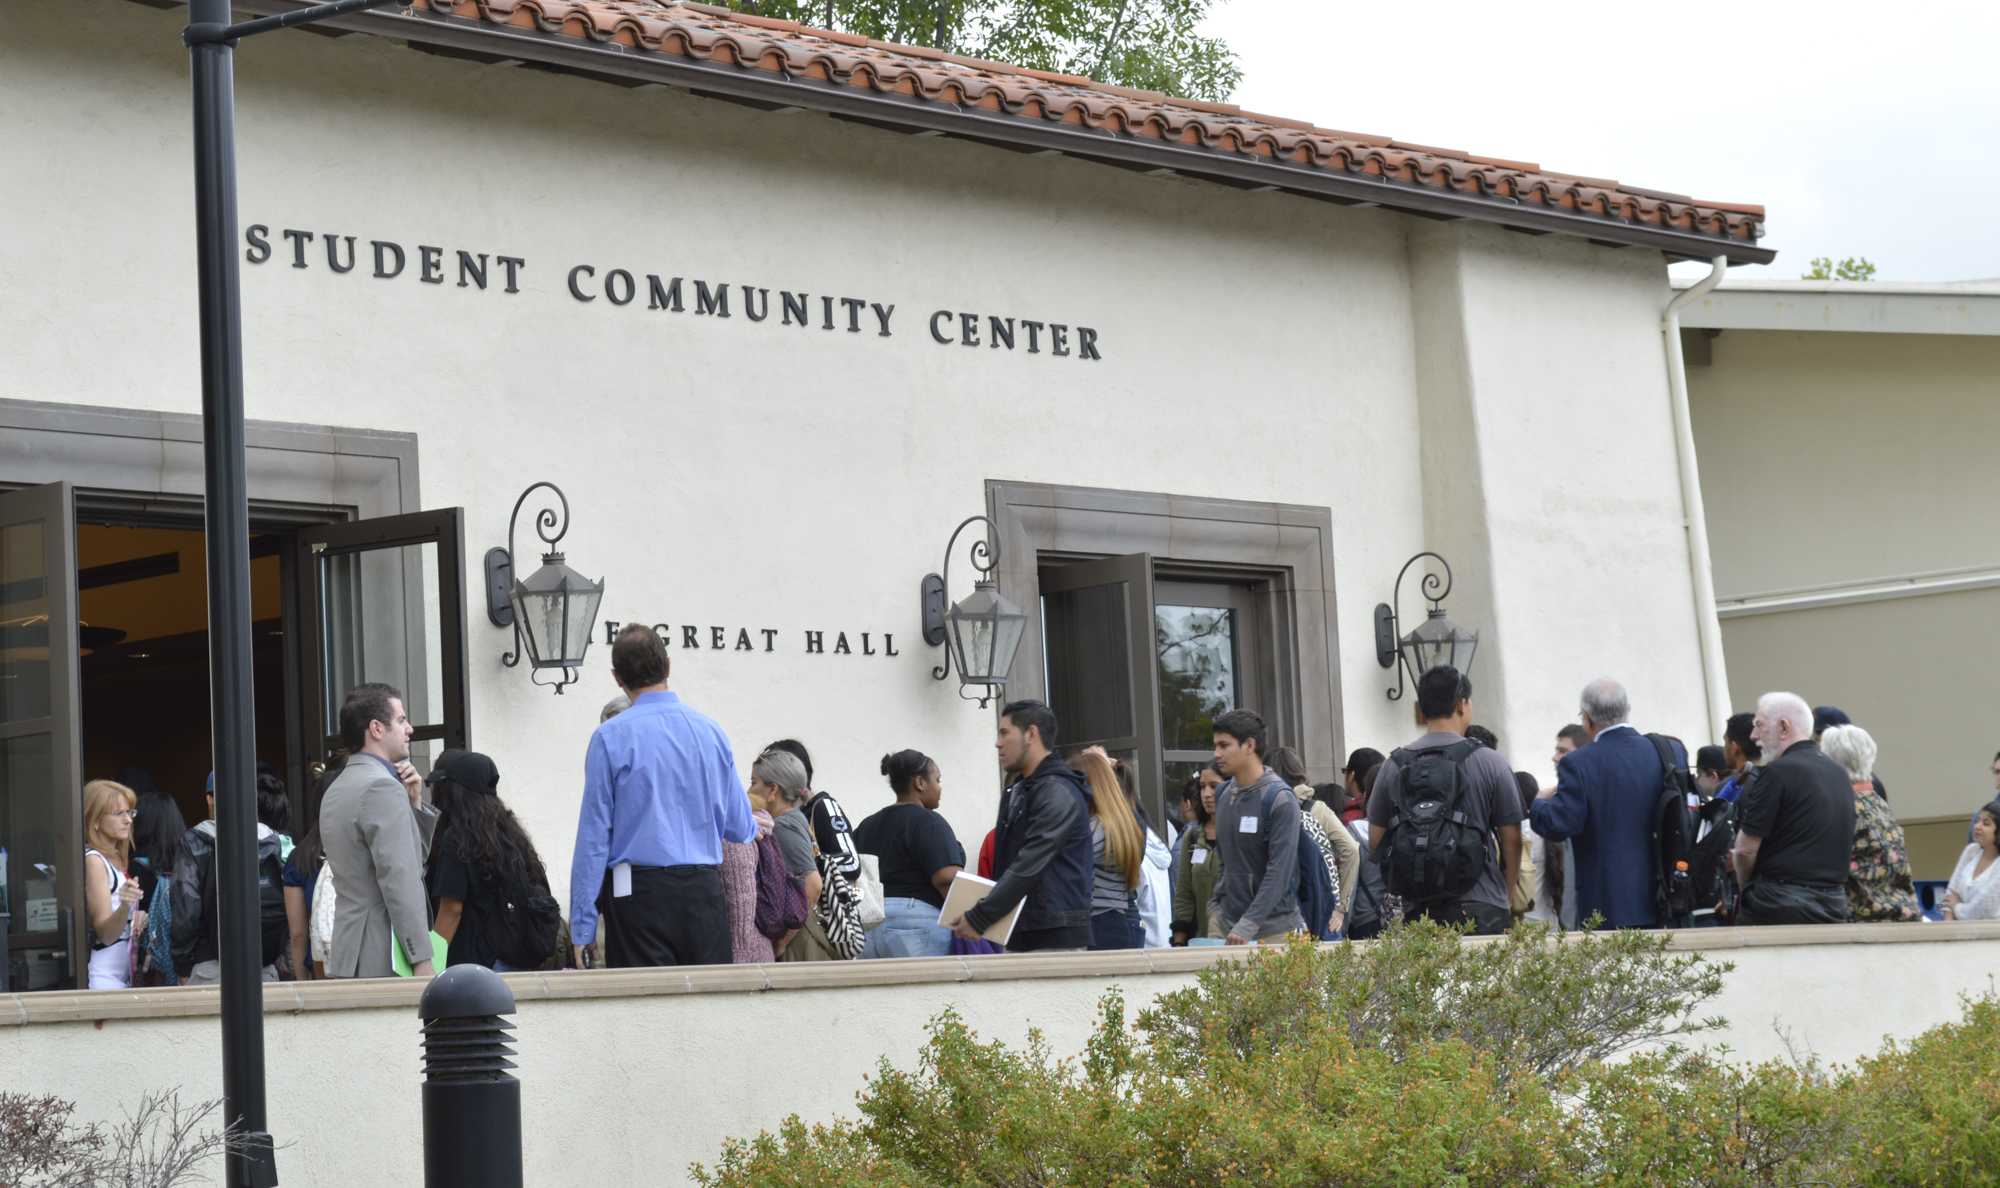 Pierce College's Town Hall discusses societal issues